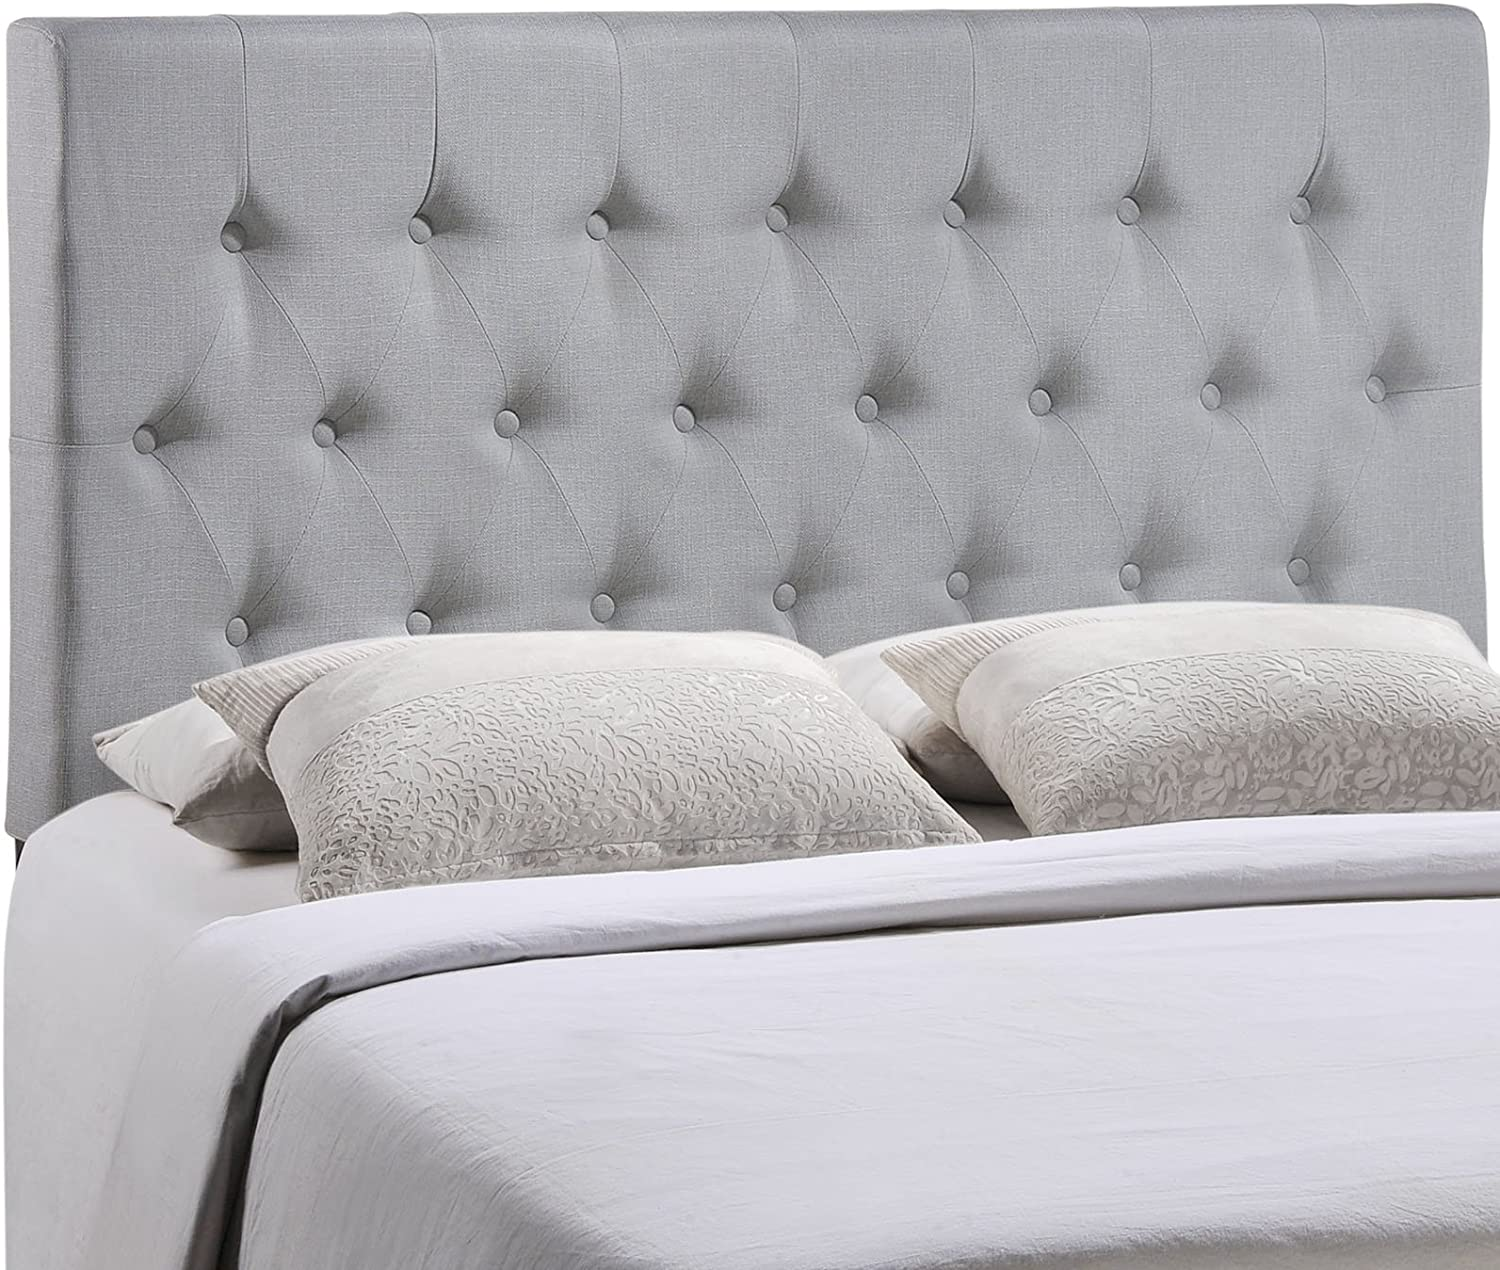 Modway Clique Tufted Button Diamond Pattern Linen Fabric Upholstered Queen Headboard in Gray